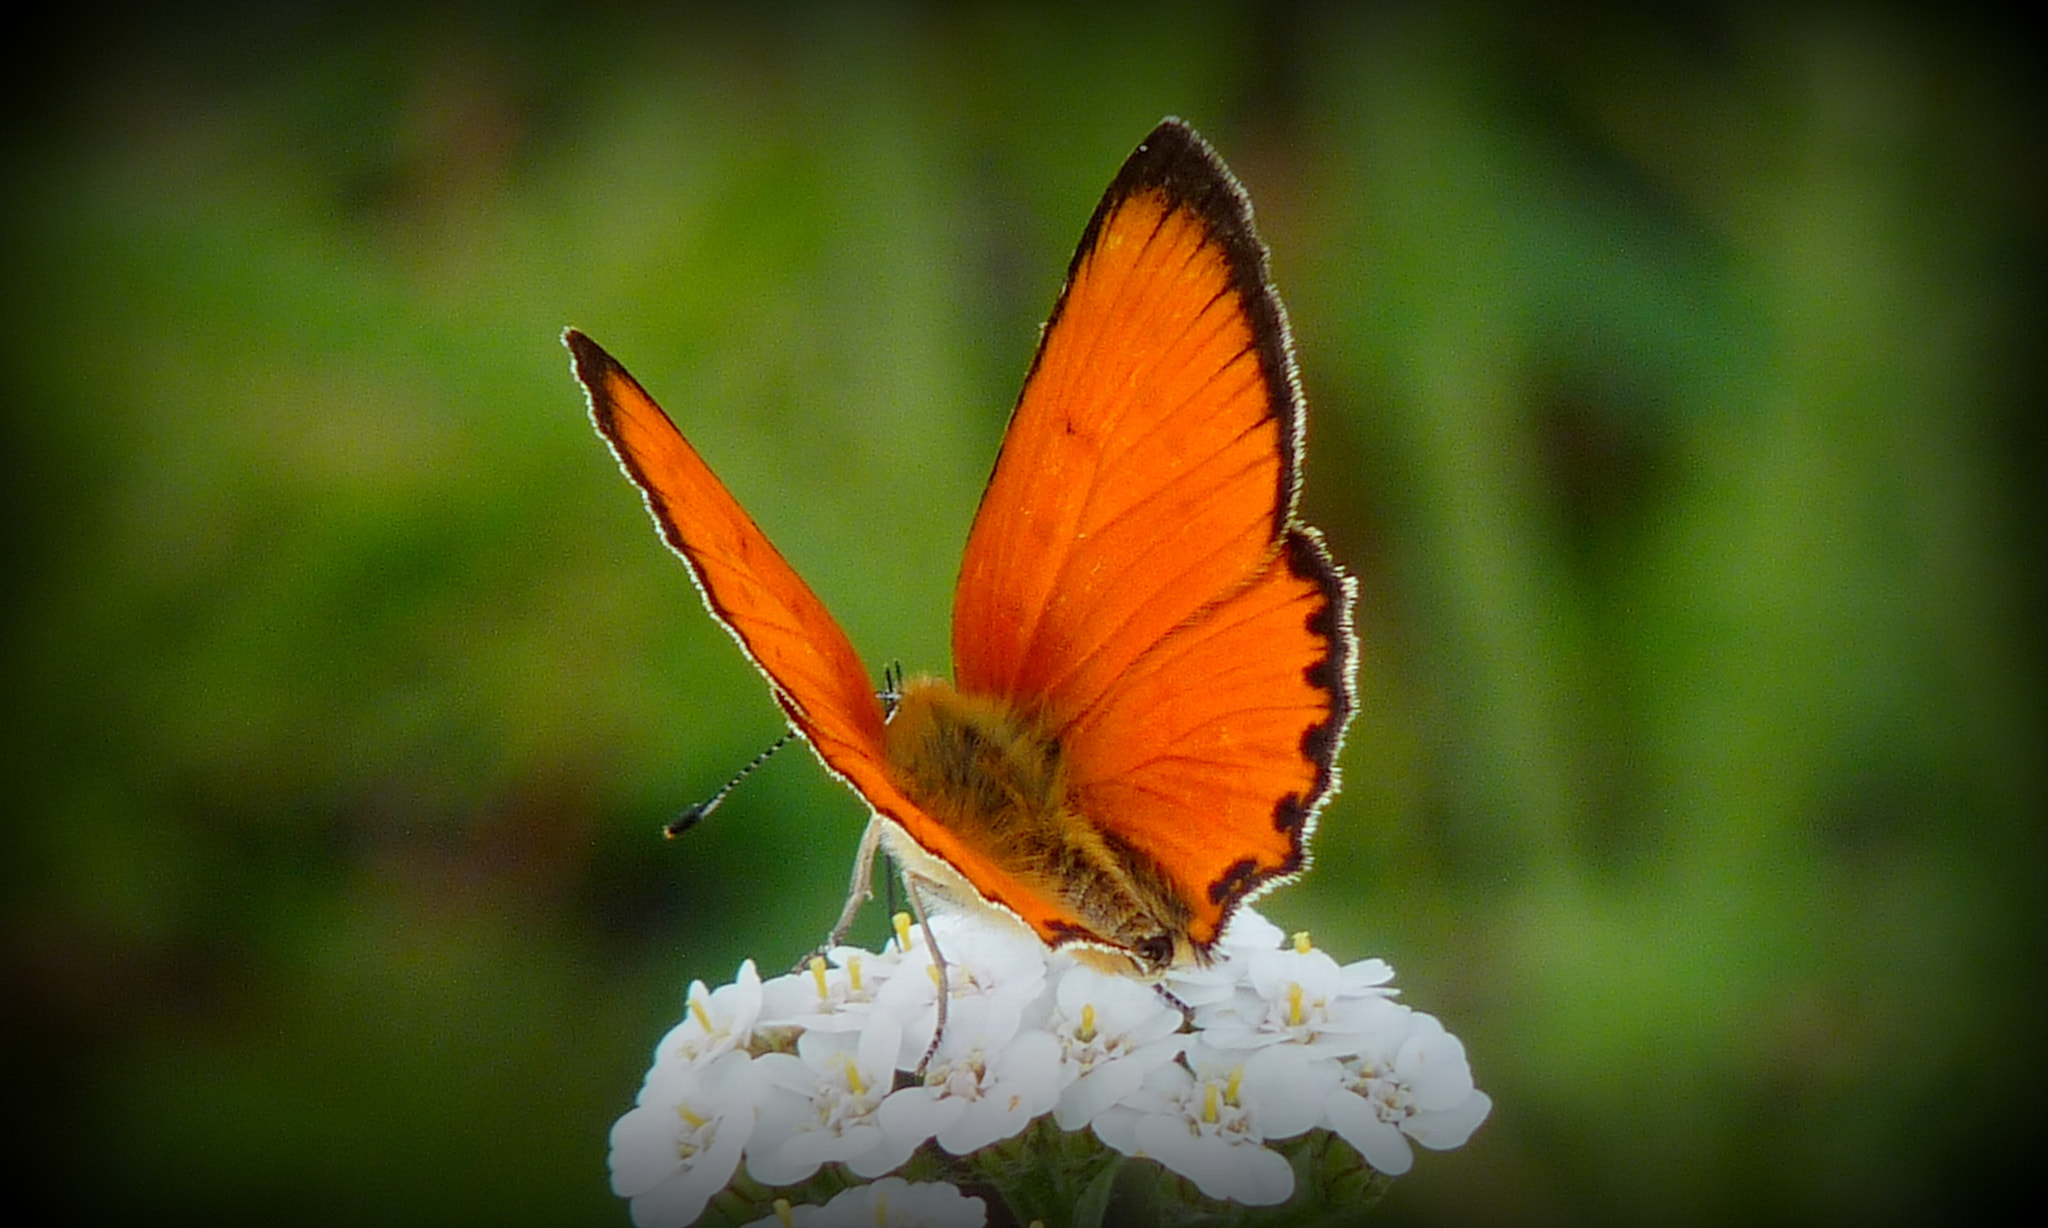 Photograph Lycaena virgaureae by MAURIZIO PONTINI on 500px